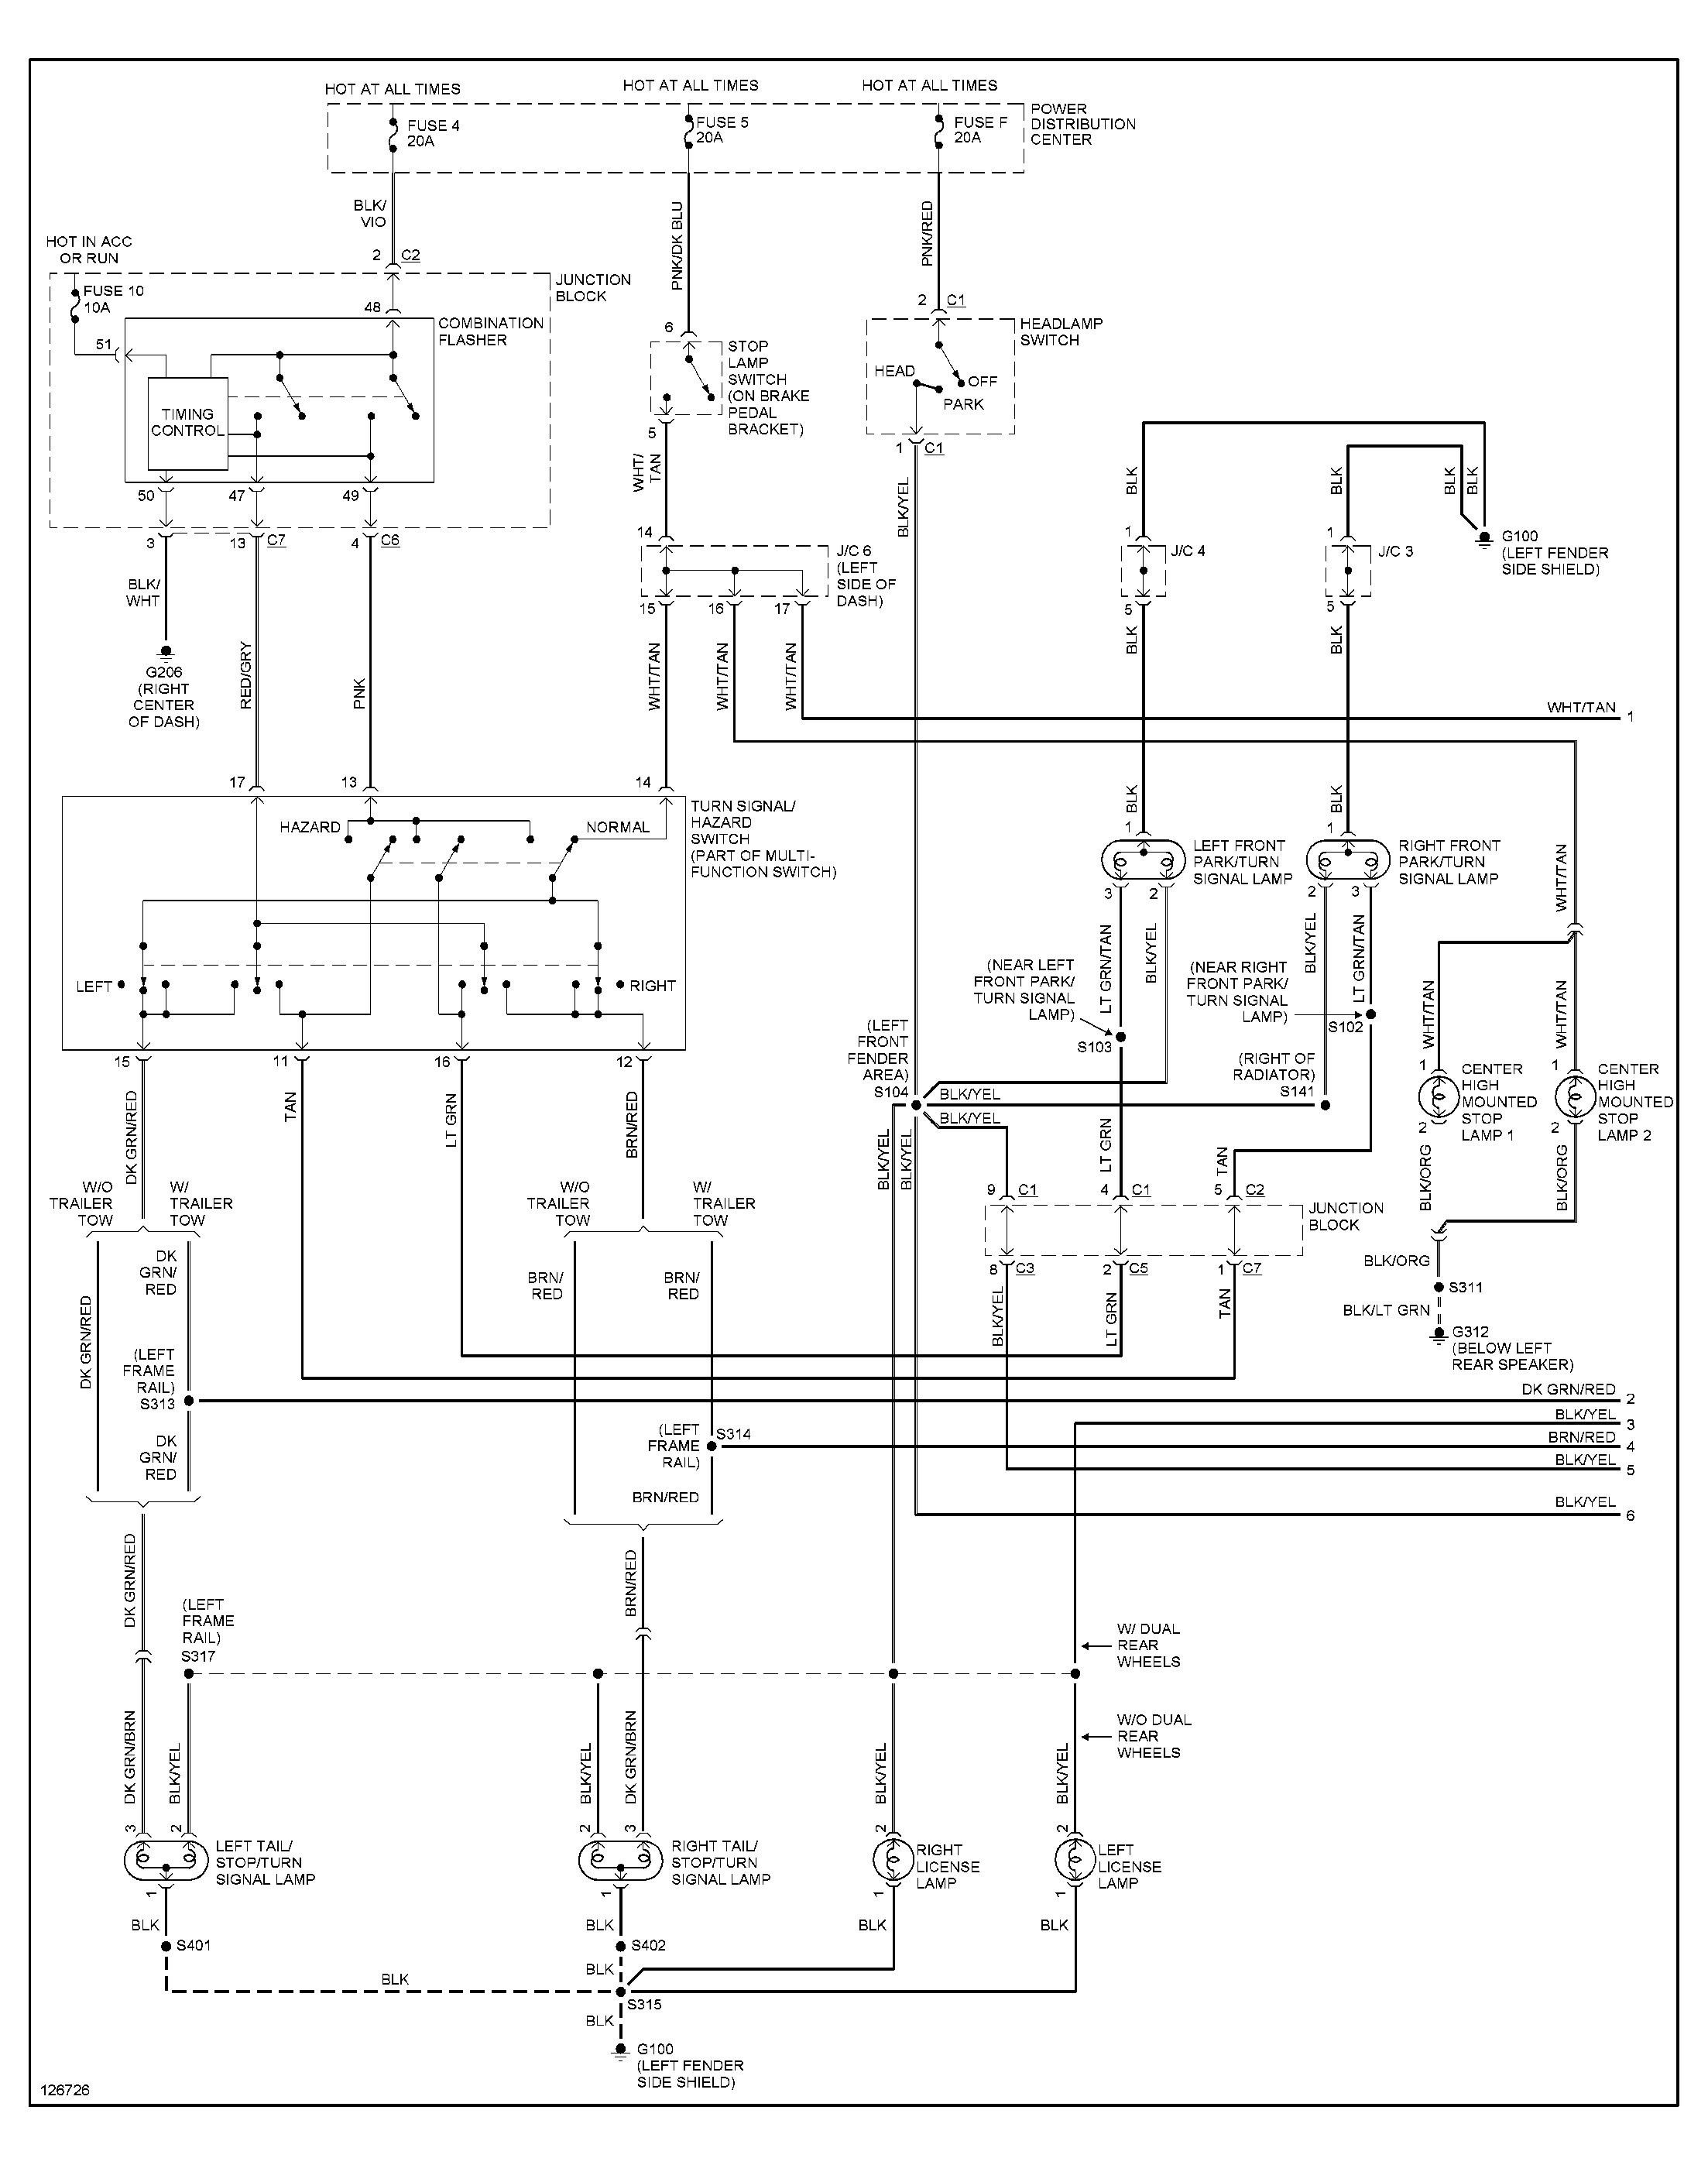 2001 Dodge Ram 1500 Tail Light Wiring Diagram from mainetreasurechest.com